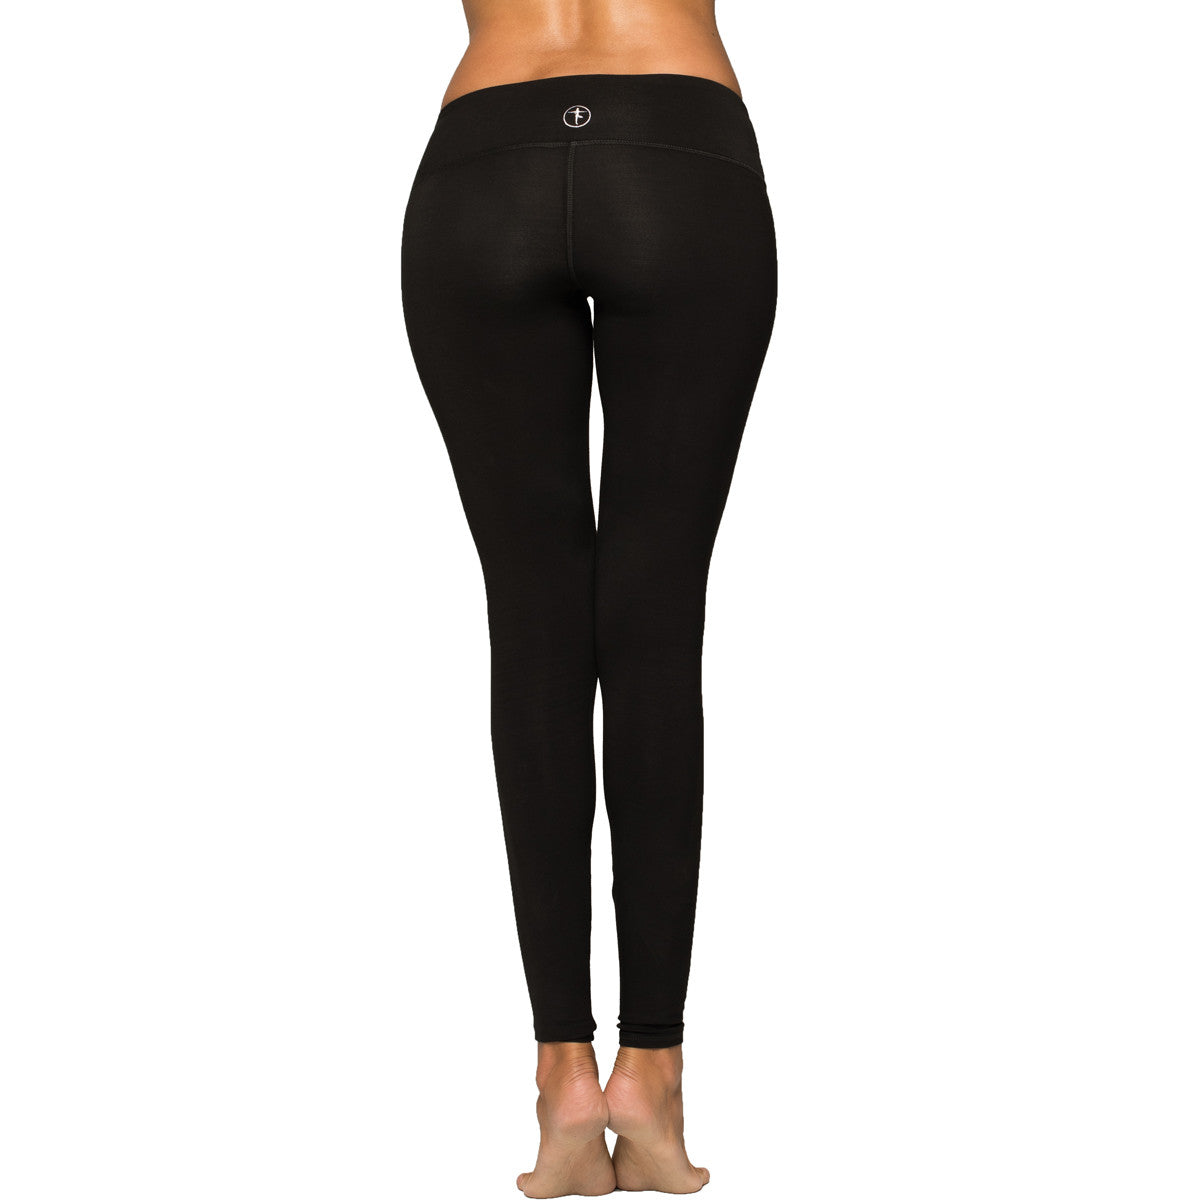 Black Cropped Yoga Leggings by YOGiiZA - YOGiiZA.com